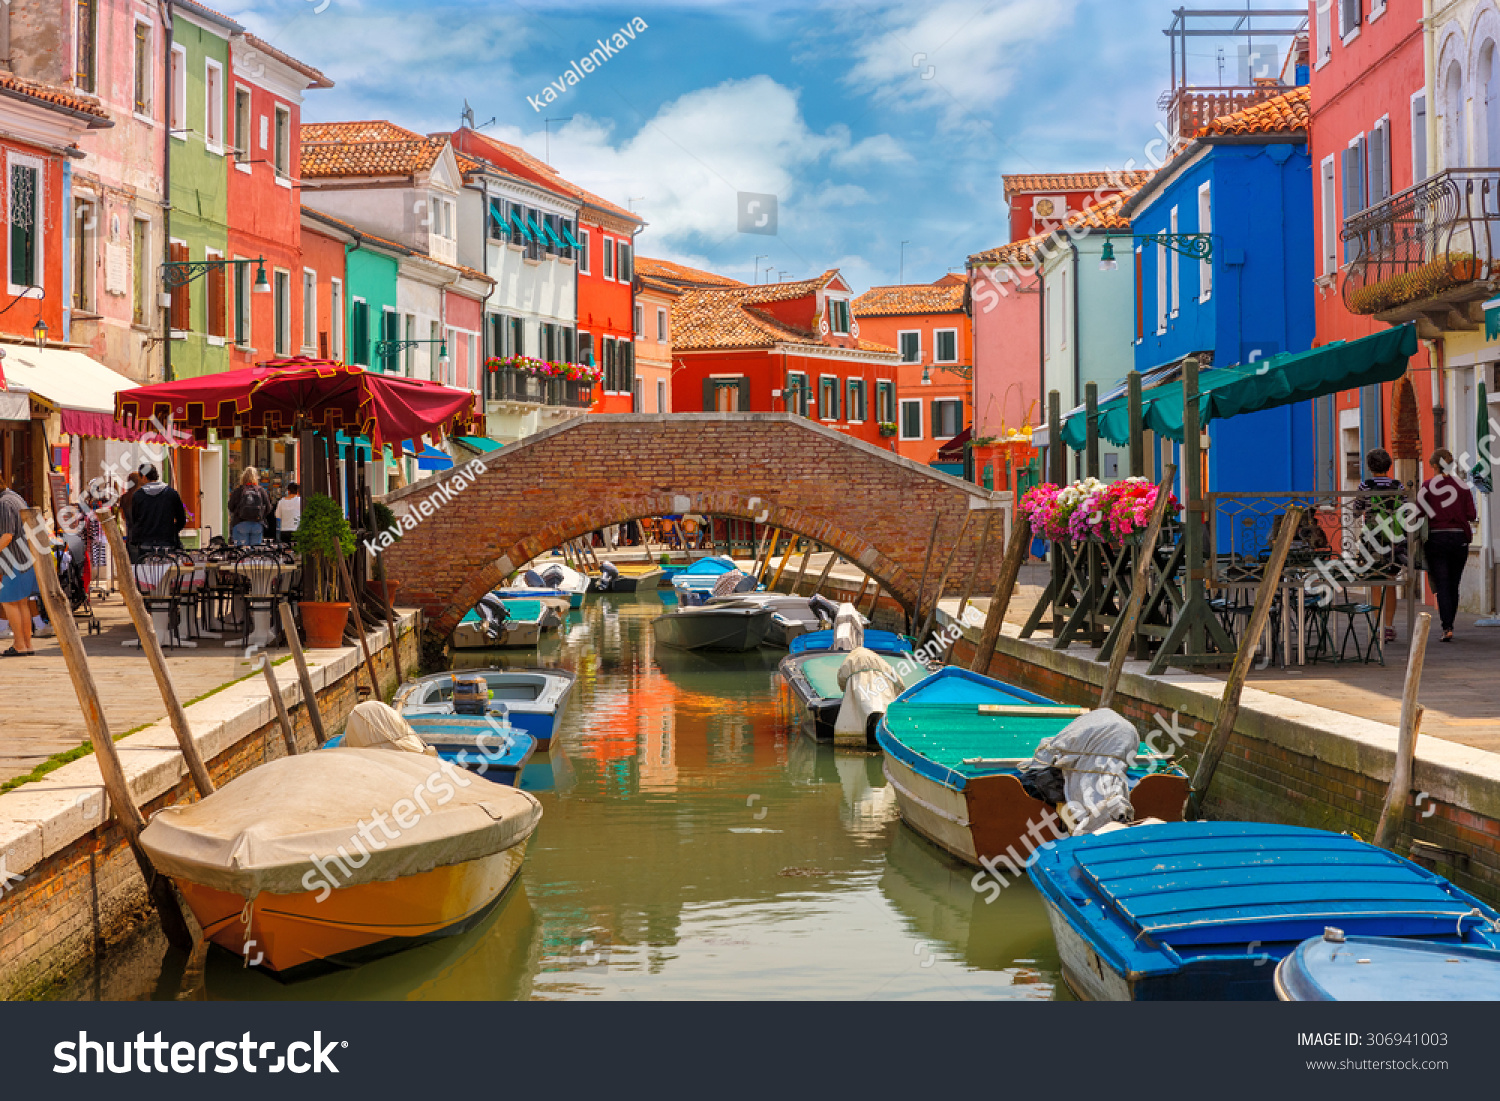 Colorful burano italy burano tourism - Bridge And Canal With Colorful Houses On The Famous Island Burano Venice Italy